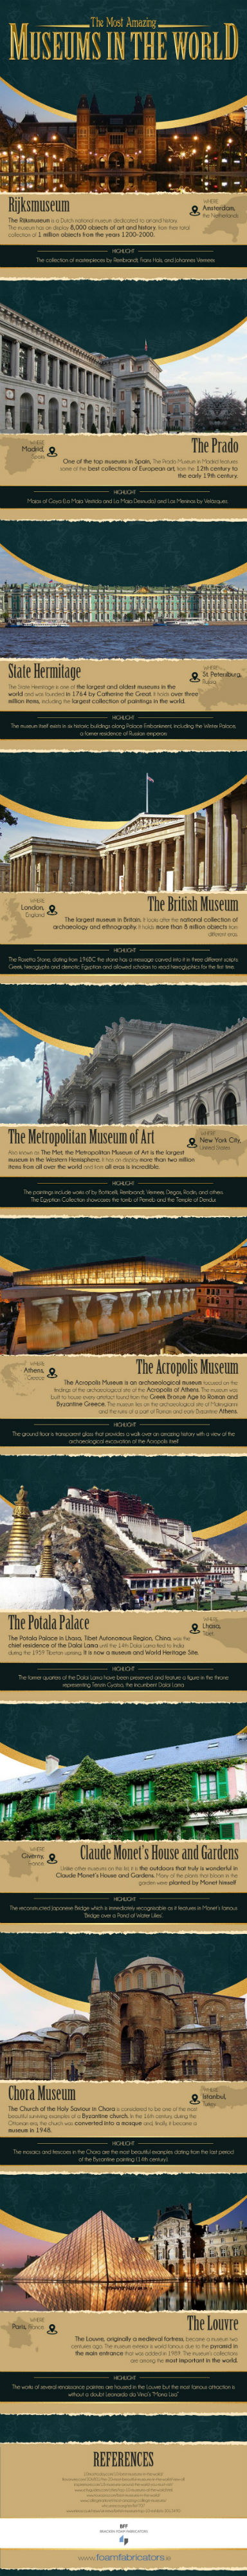 Museums Around The World [Infographic]